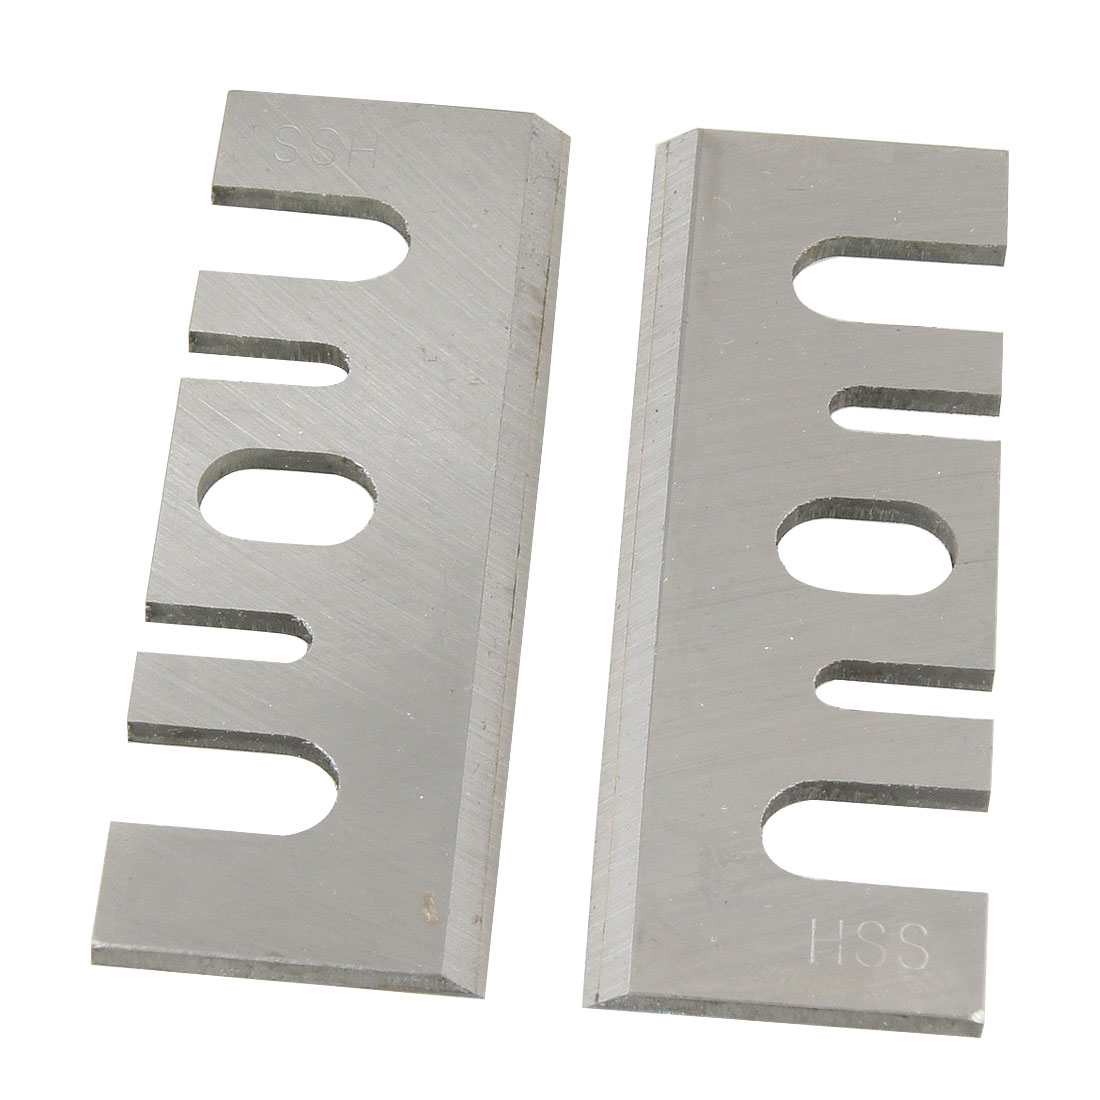 2 Pcs Silver Tone Electric Planer Blades for Makita F20A